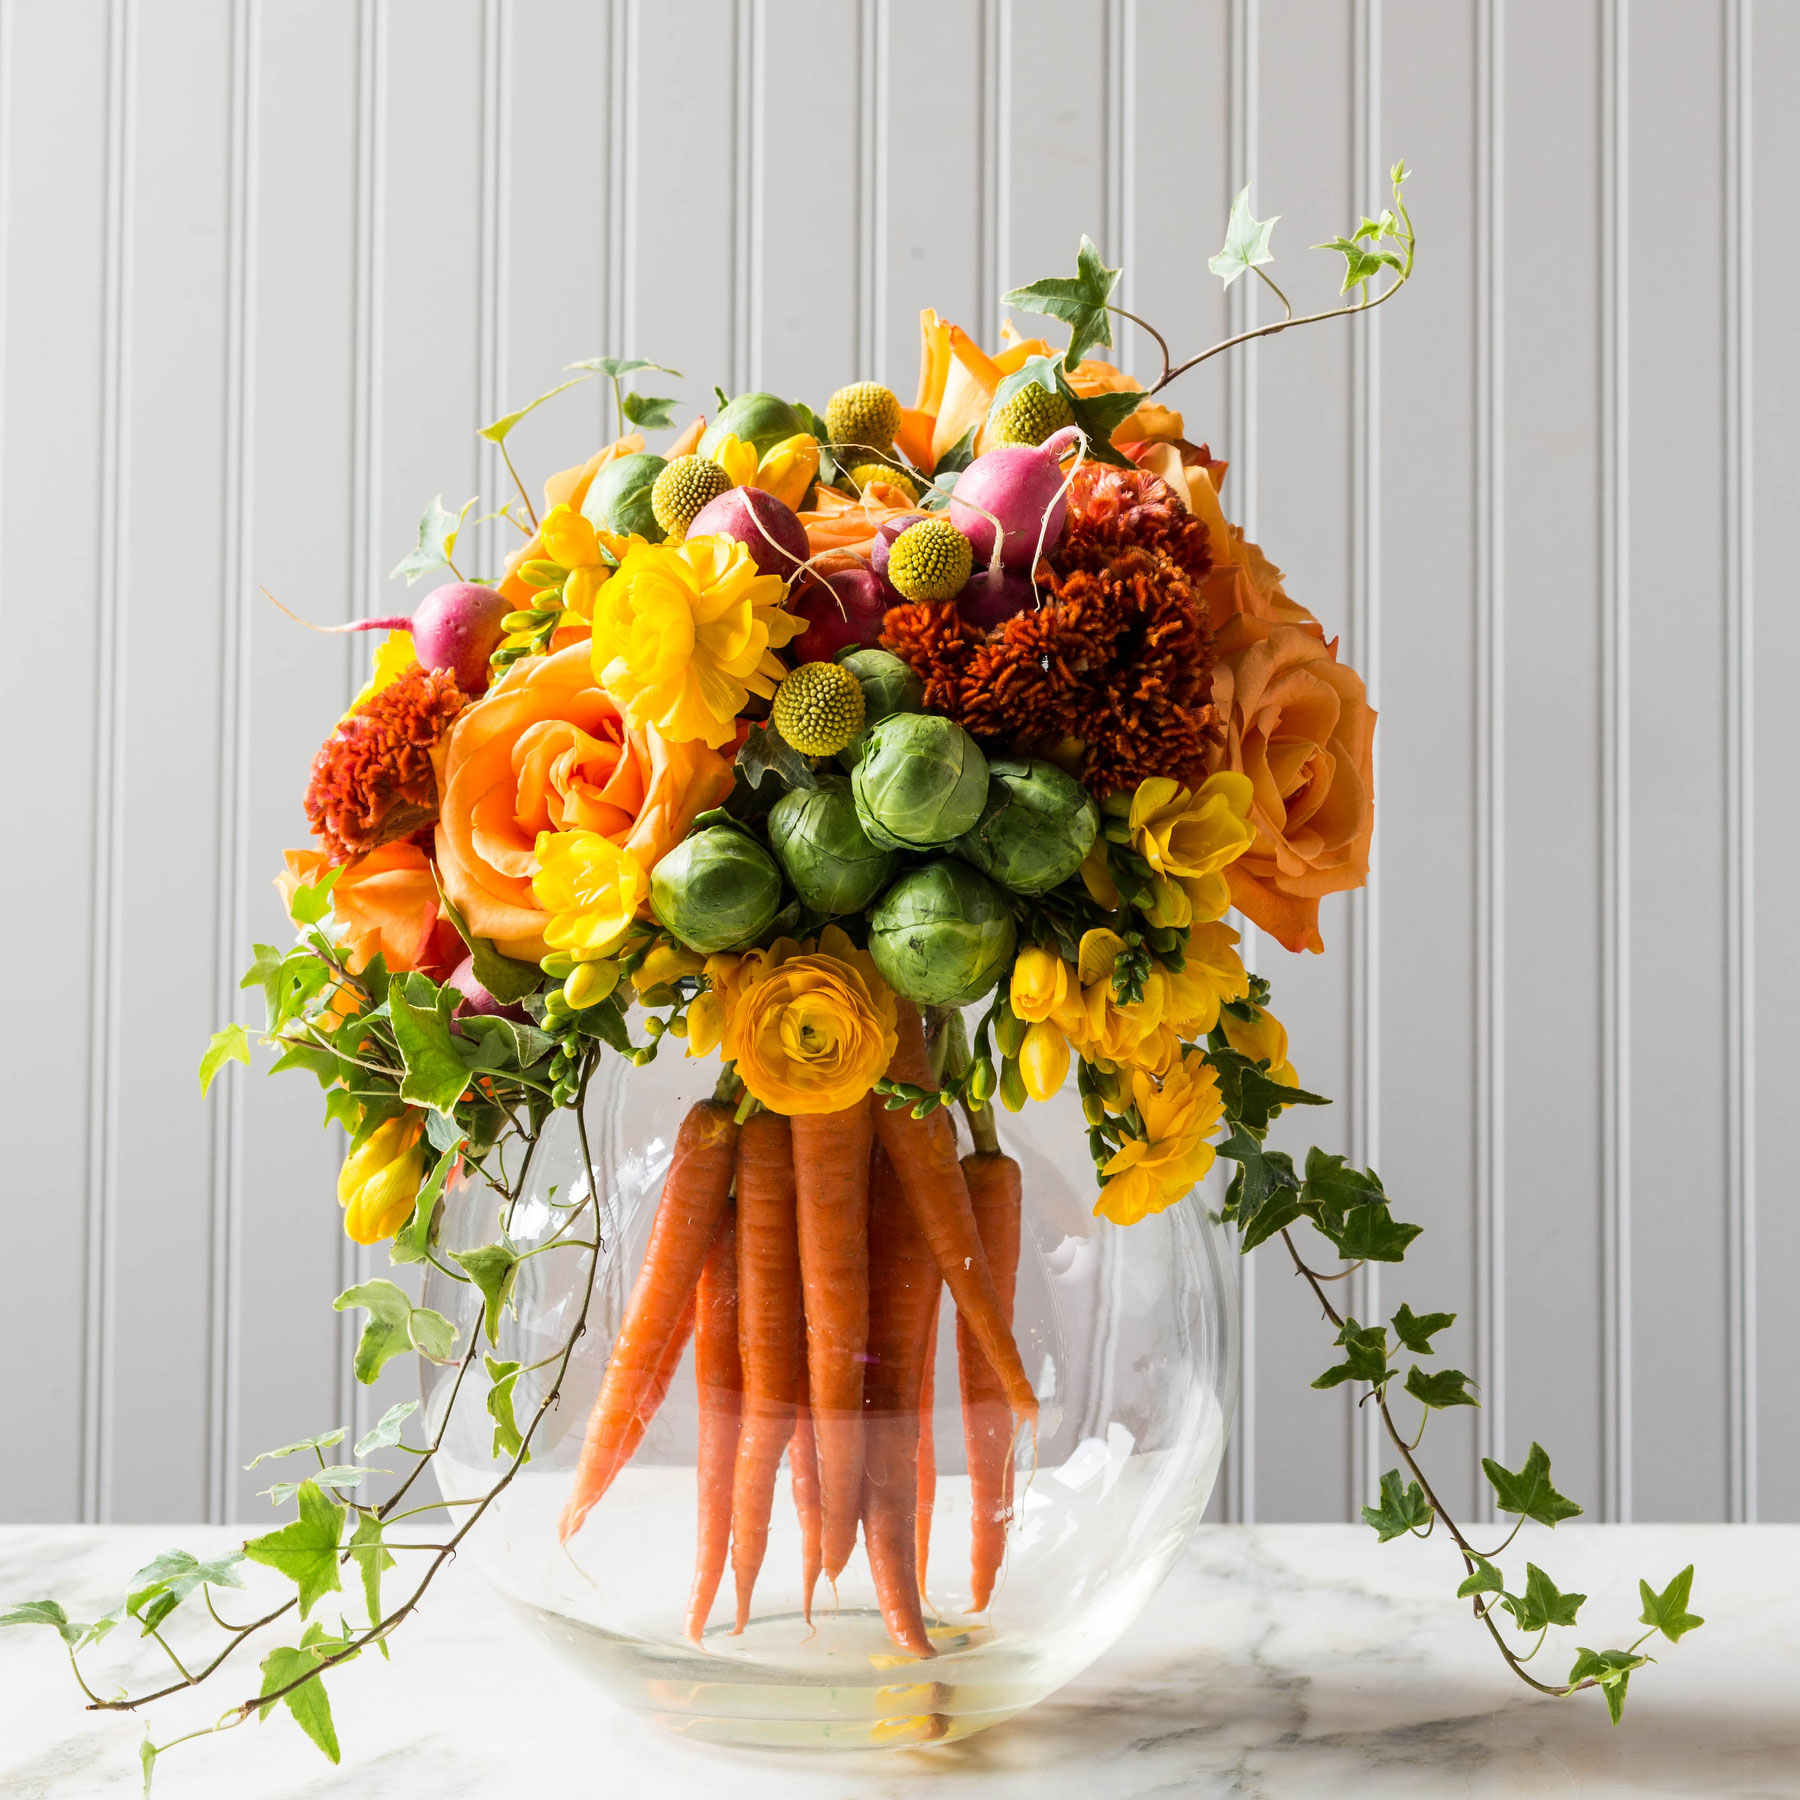 Easter Centerpiece with Flowers and Vegetables